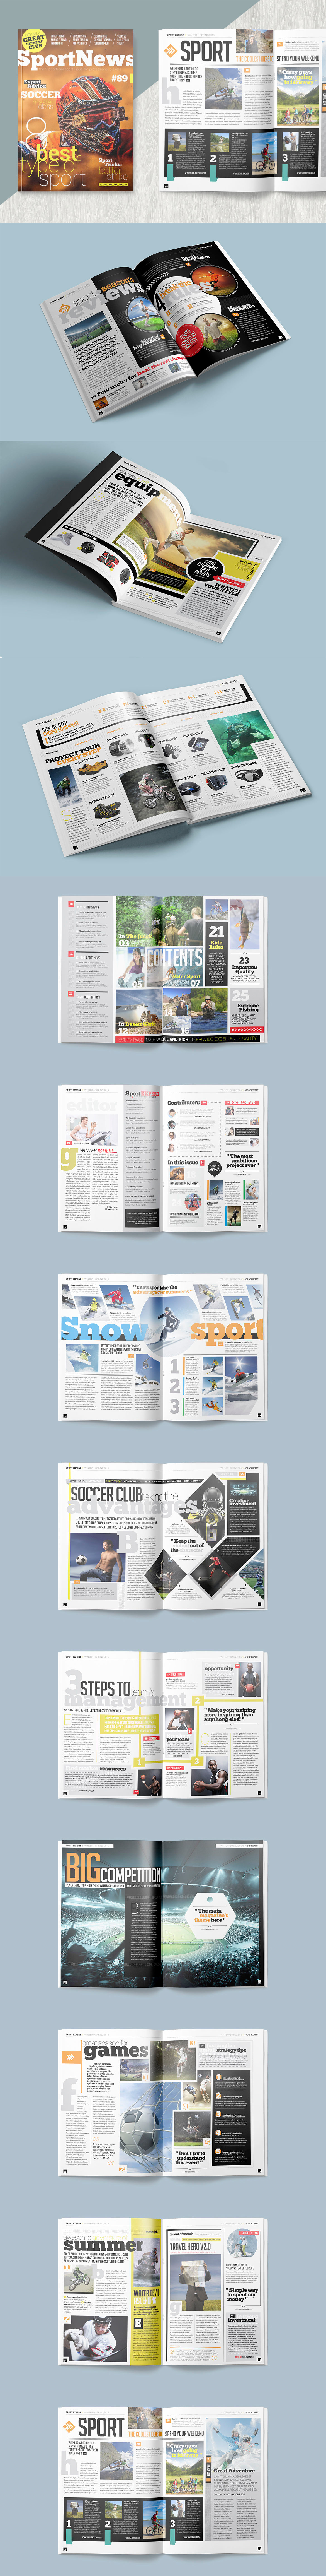 Magazine Template InDesign INDD - 25 Pages, 3 Magazine Covers | MAG+ ...